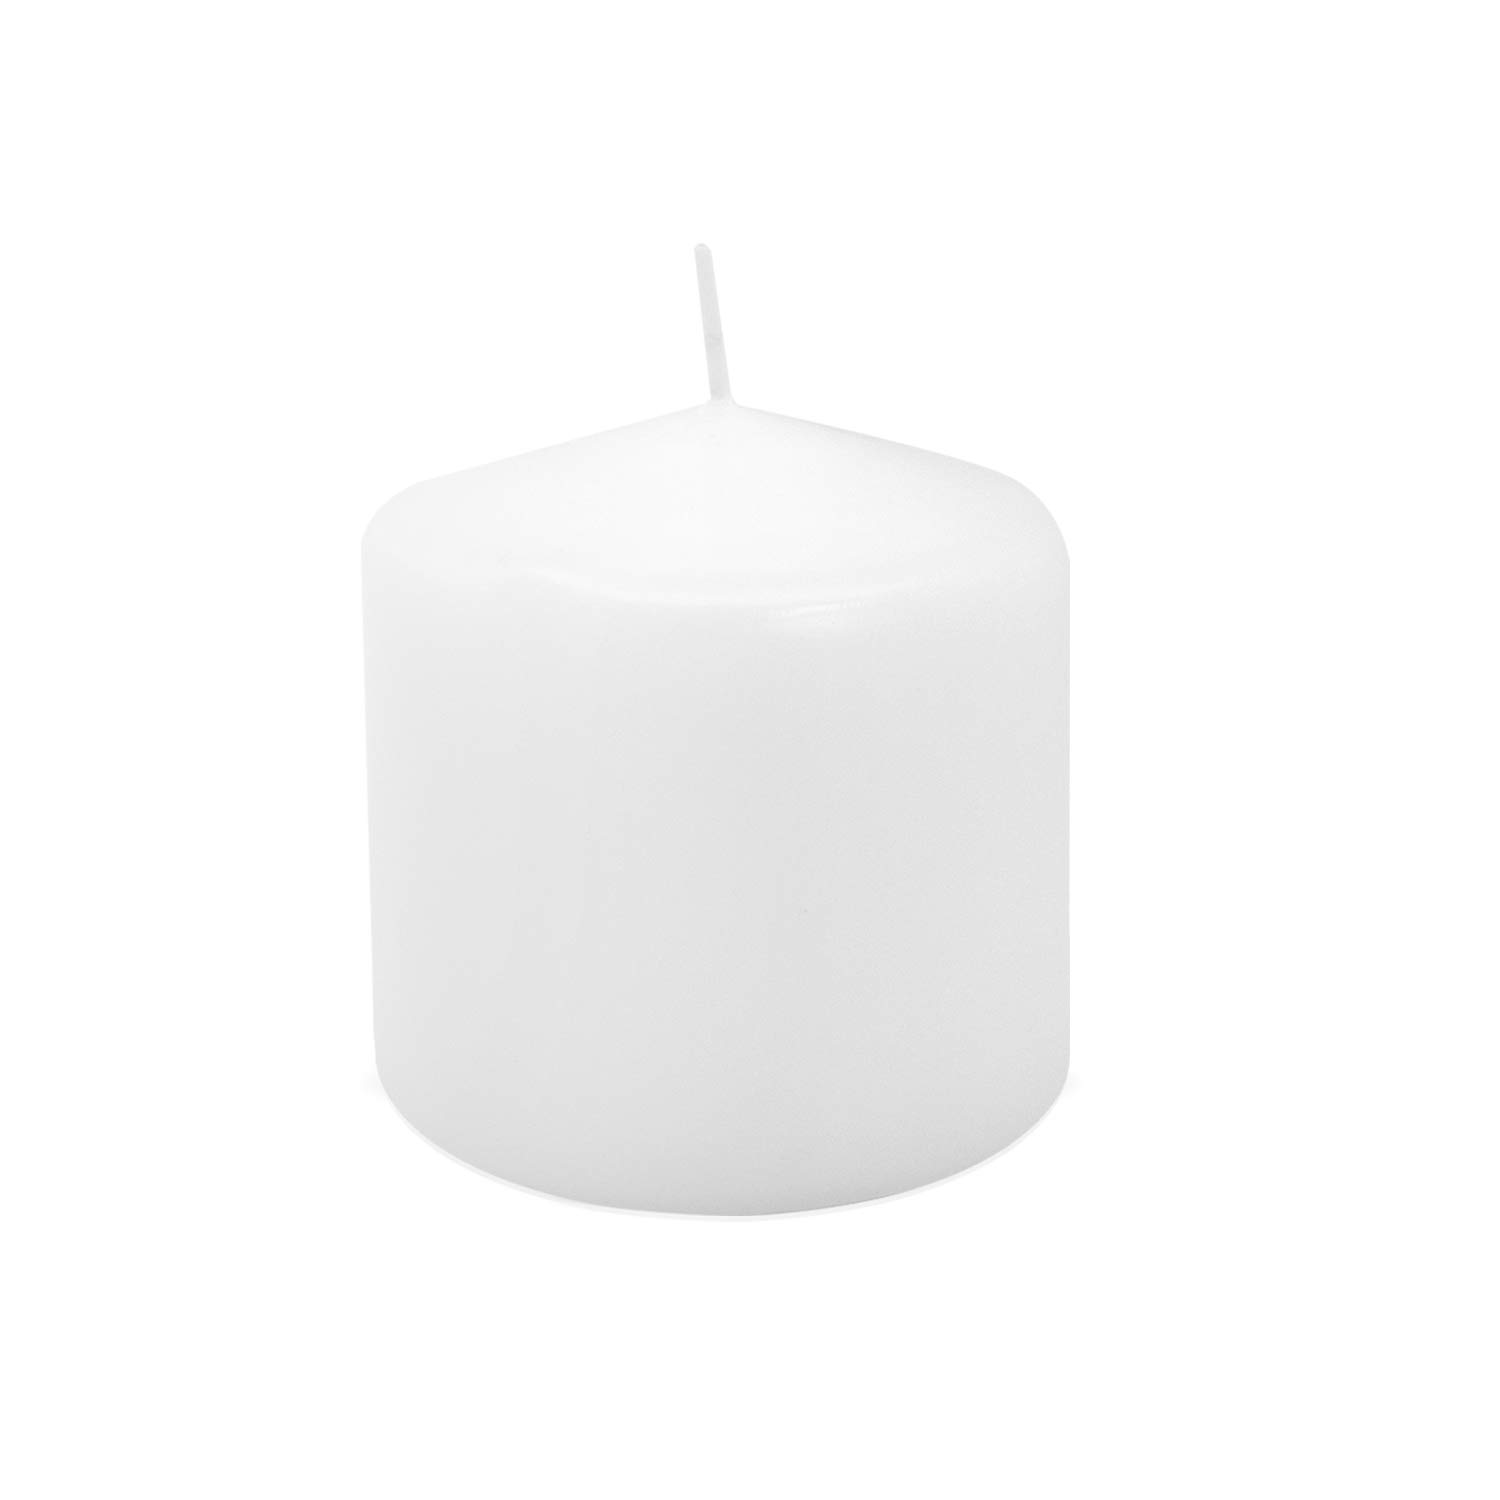 Royal Imports Pillar Candle for Wedding, Birthday, Holiday & Home Decoration, 3x3, White Wax, Set of 12 by Royal Imports